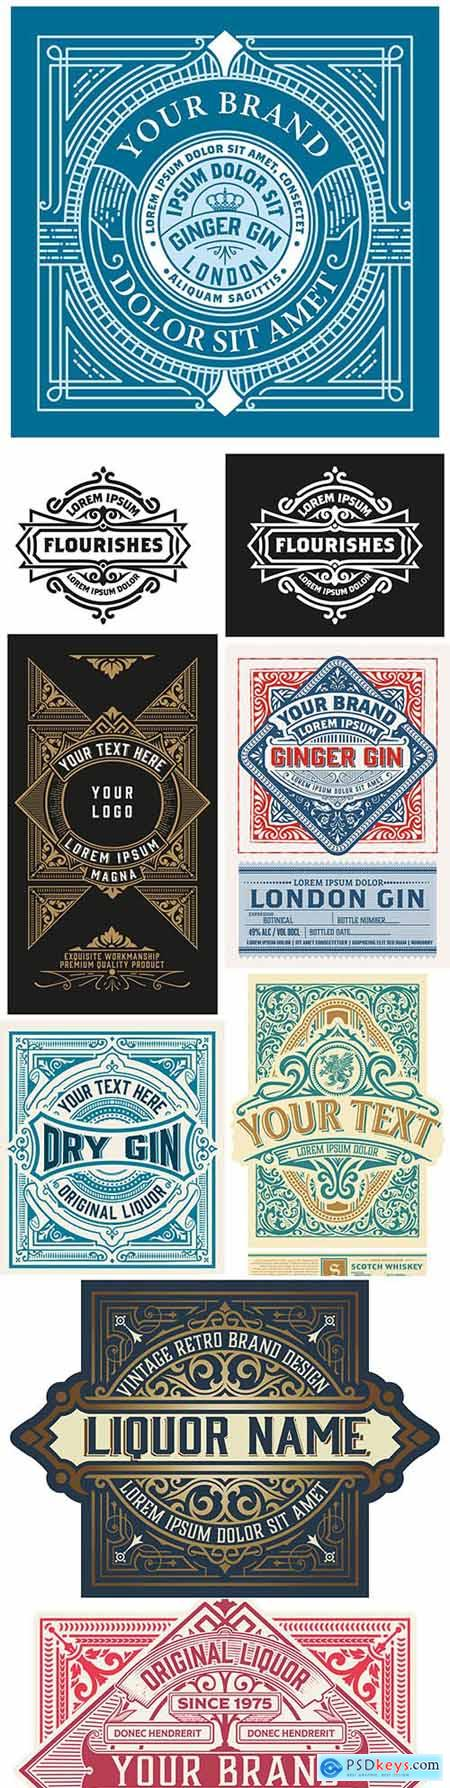 Vintage logo and etiquette template with detailed design 3